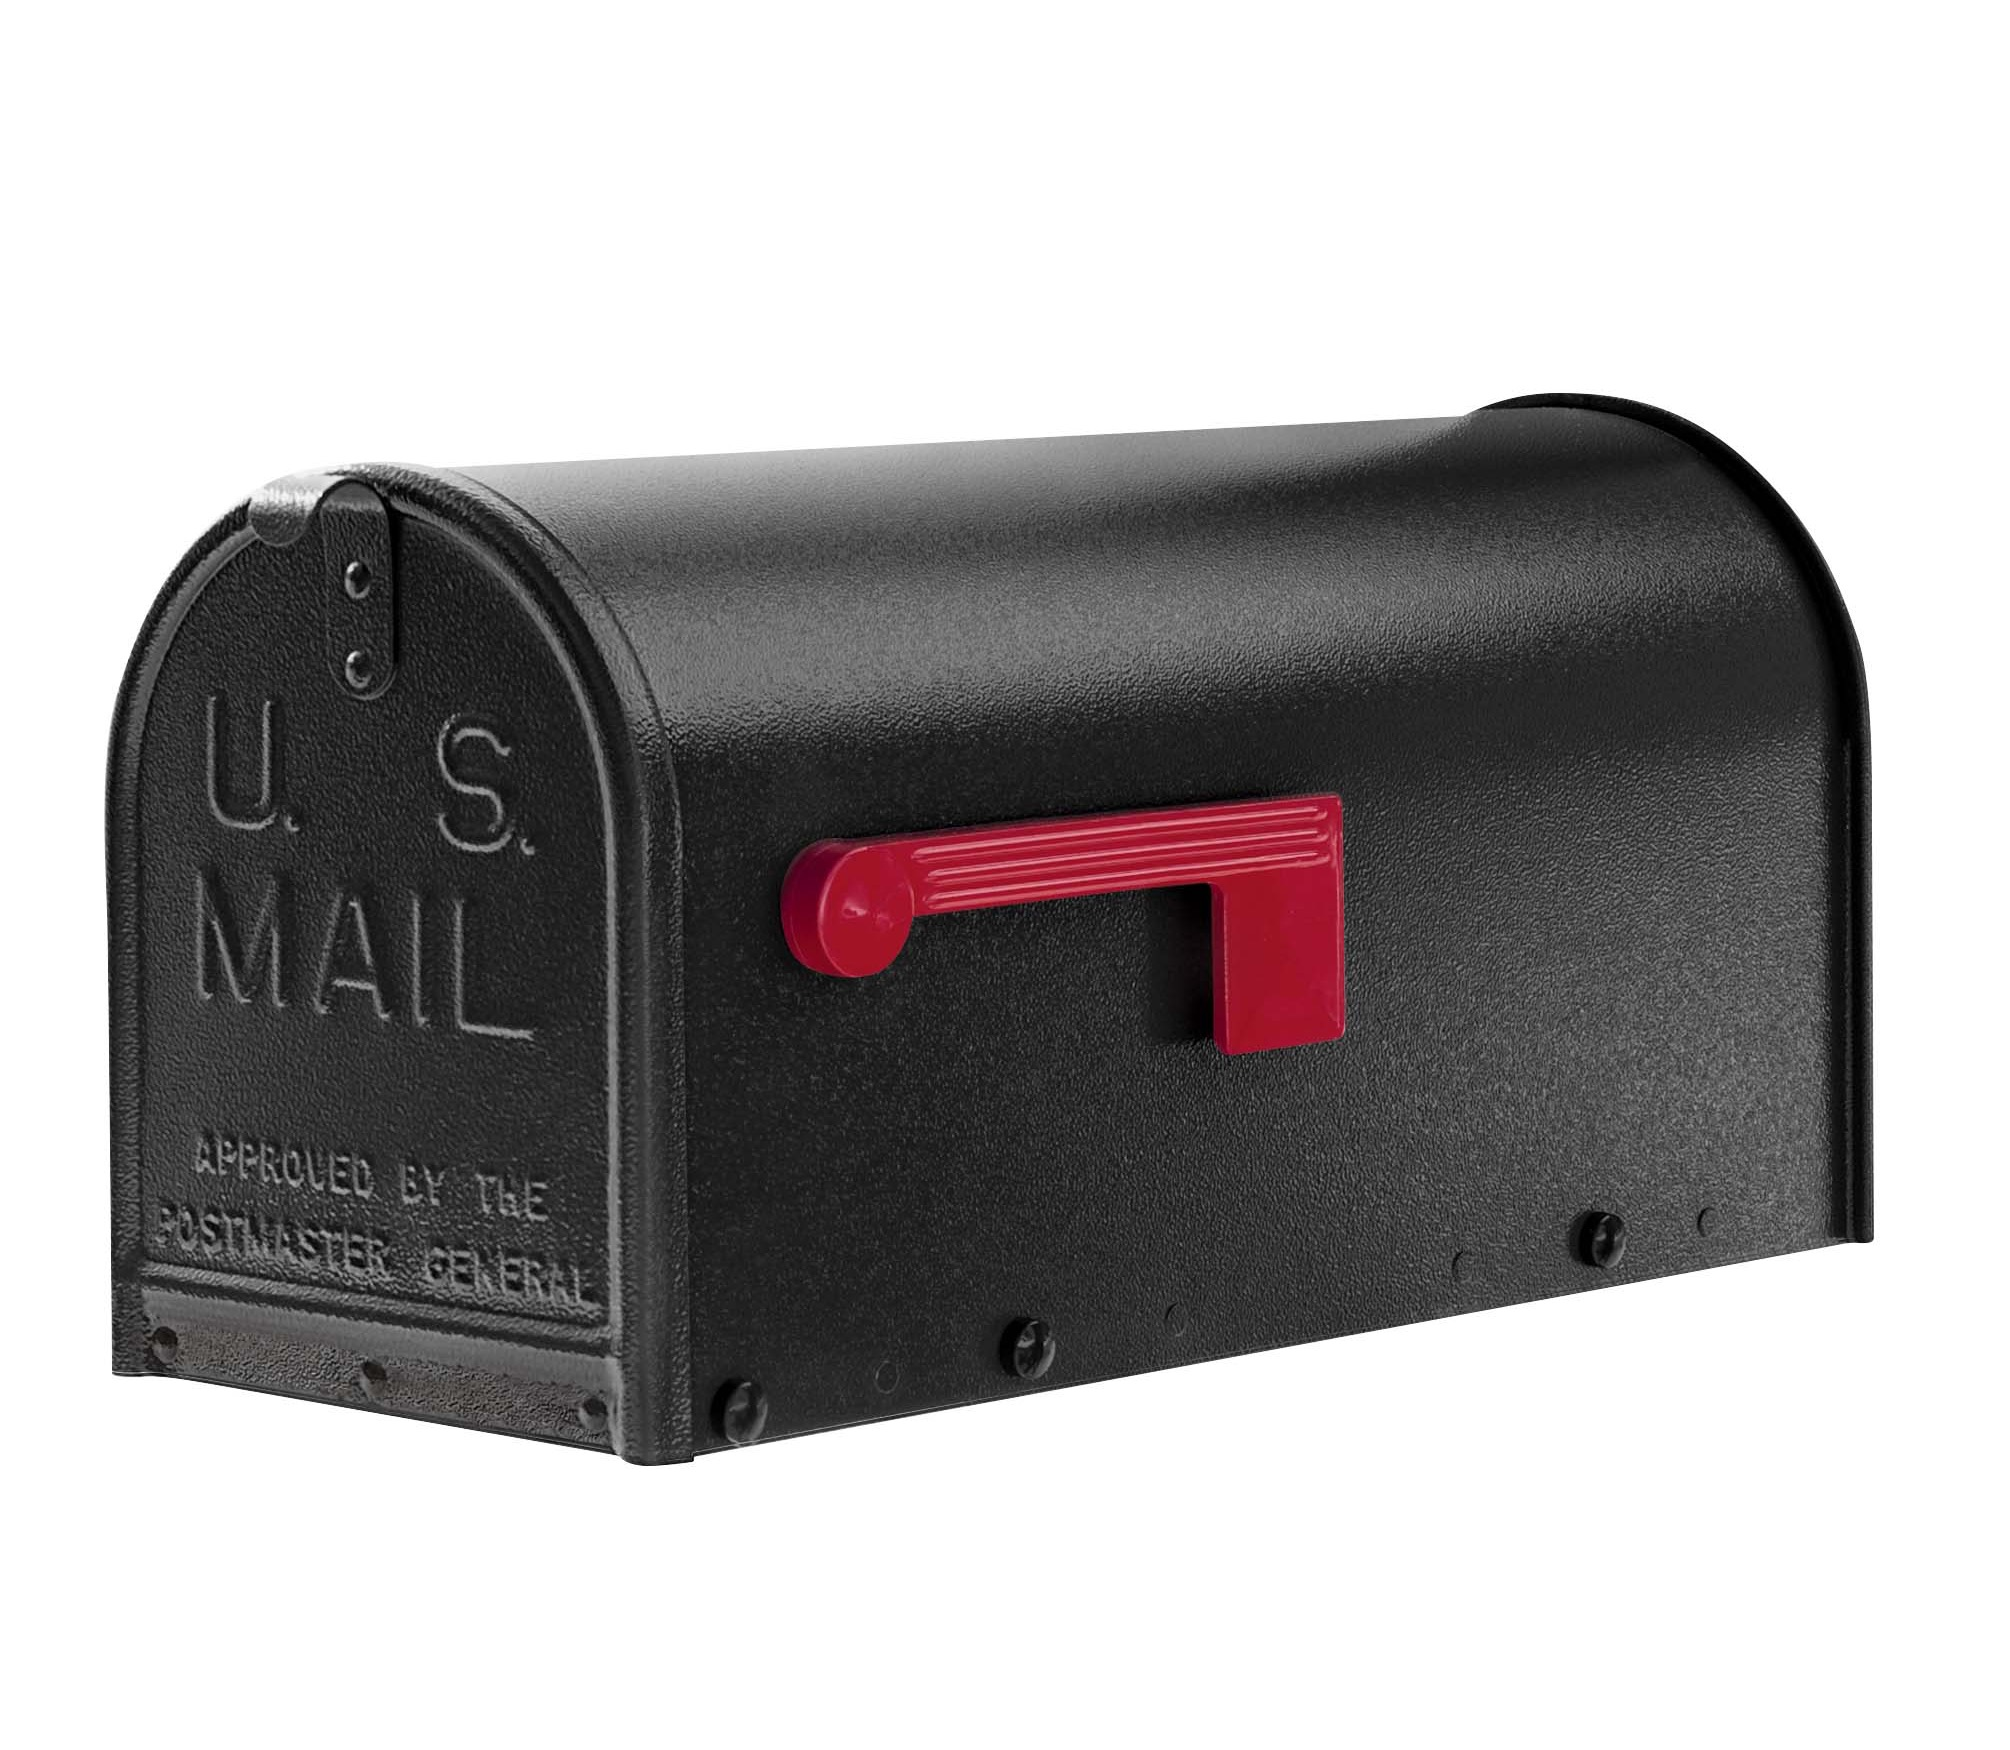 Mailbox Only (without Post)